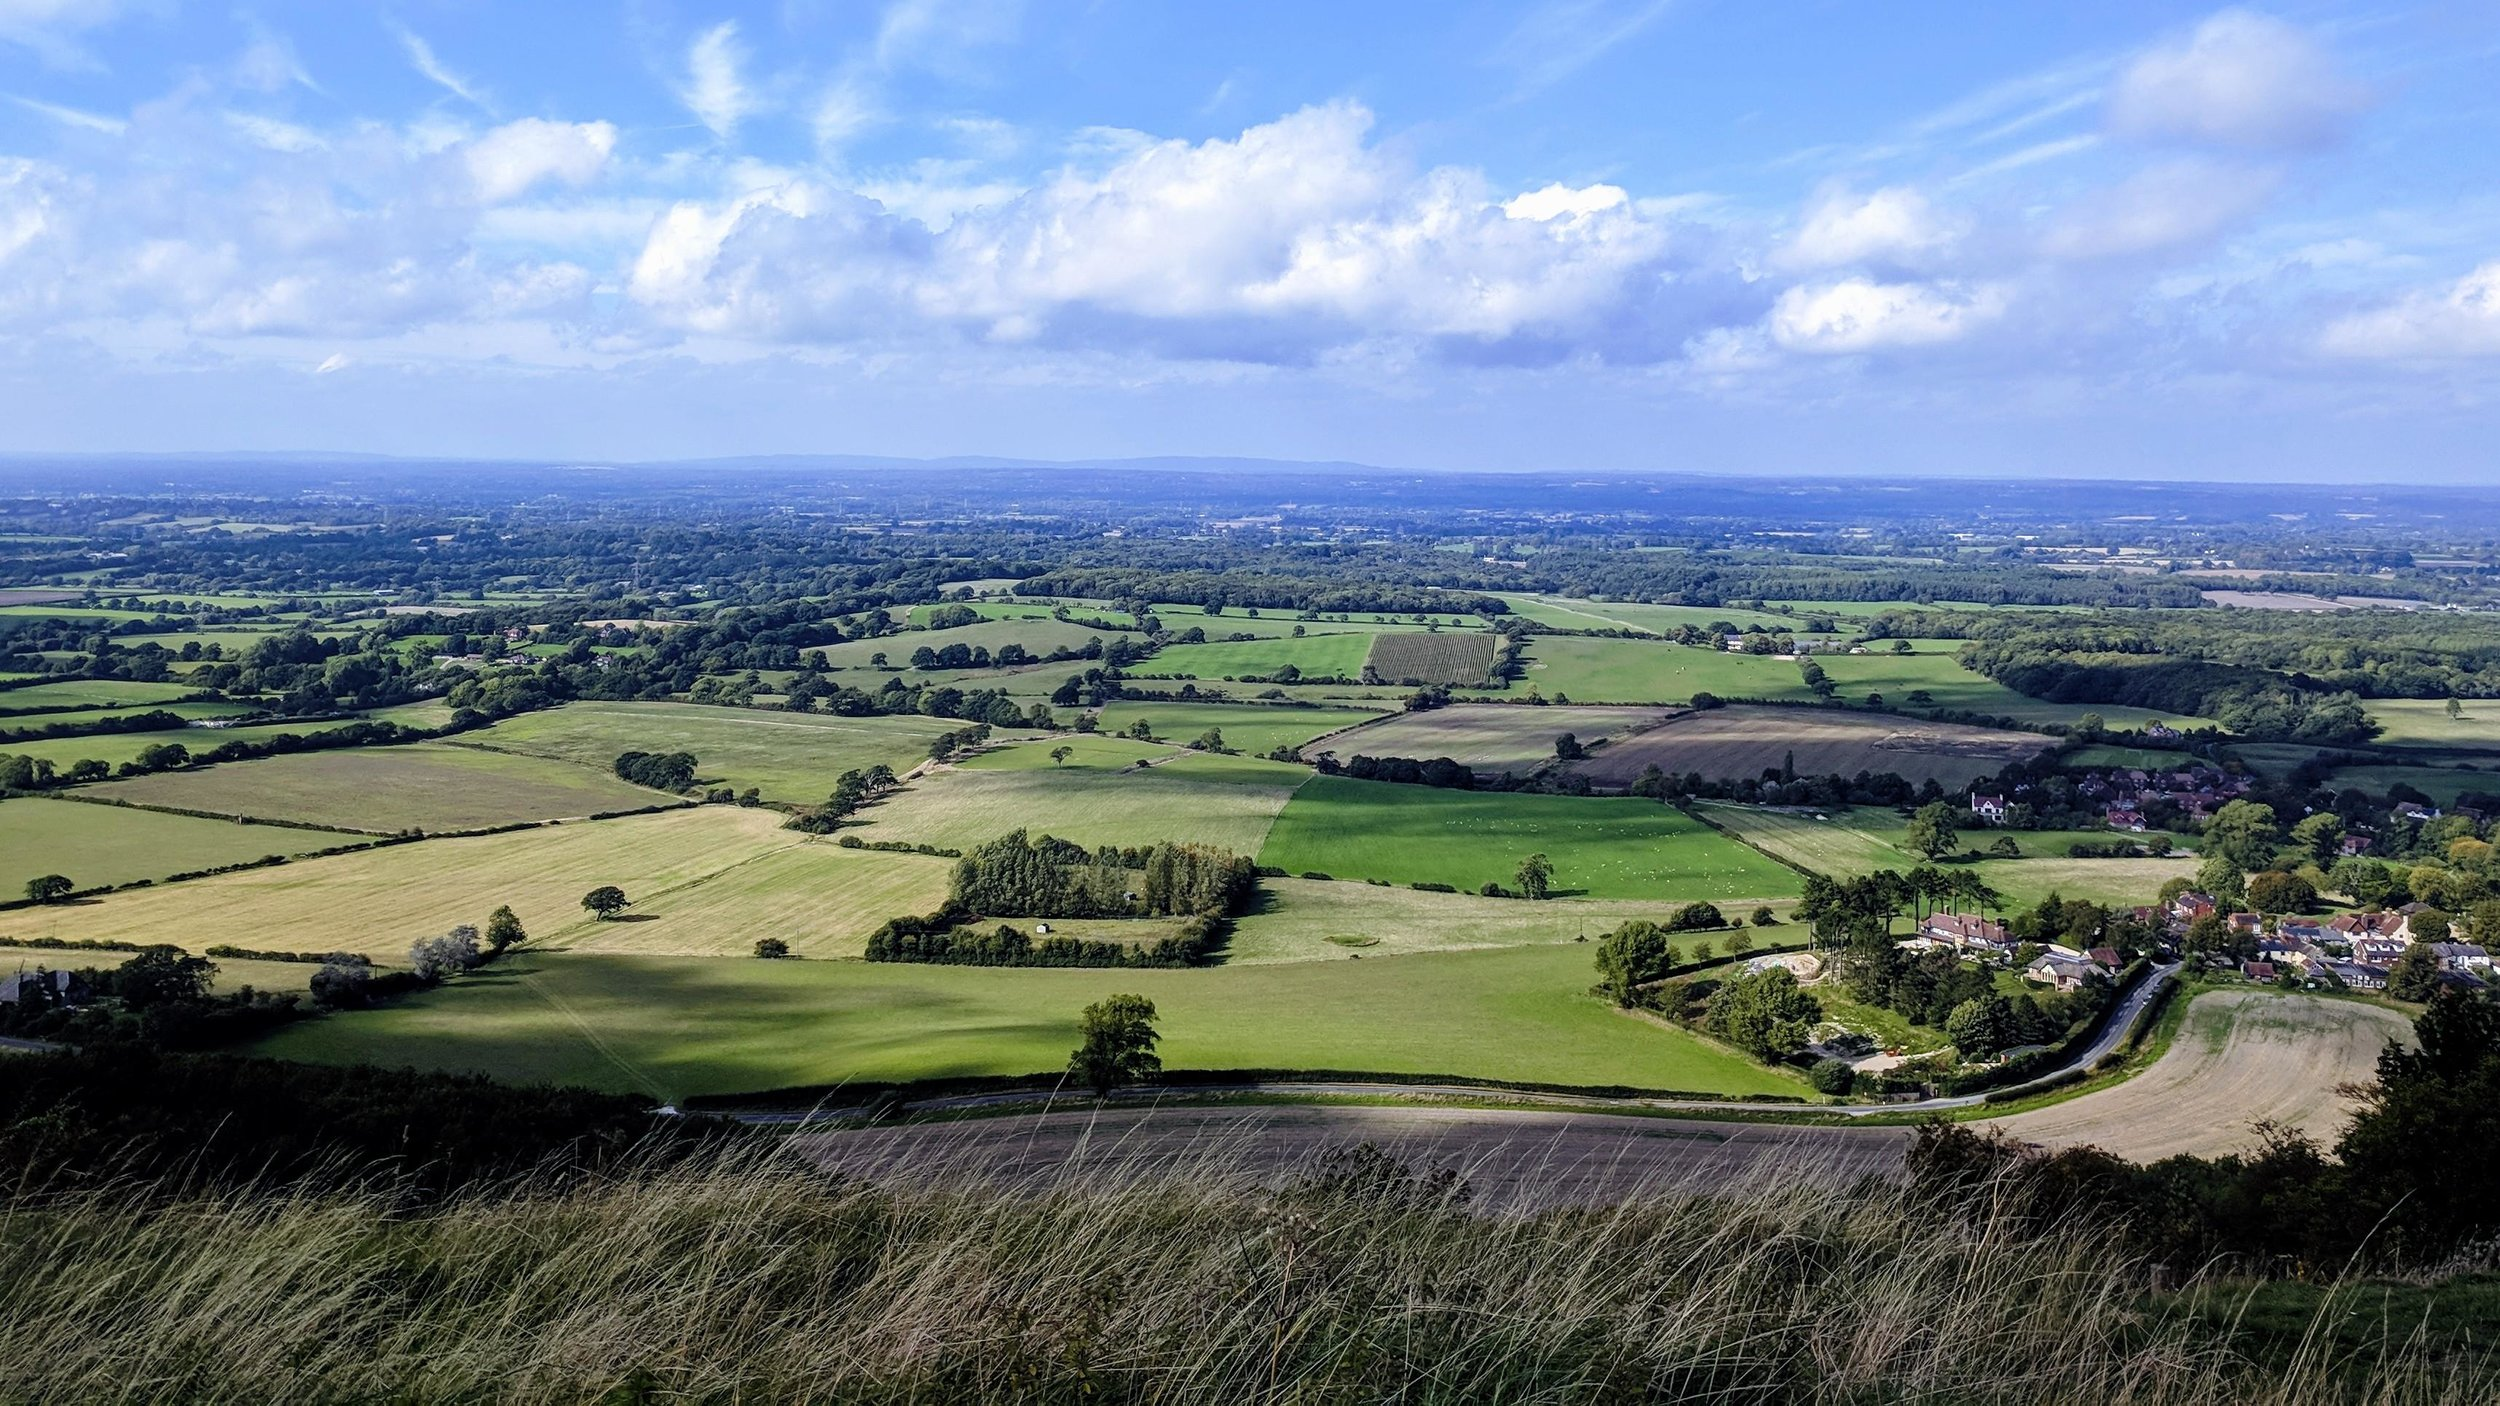 Escape to the Country - When the summer crowds get too much, jump on the open top 77 bus to Devil's Dyke for some rural downtime. Take a picnic and enjoy the stunning views, and after a ramble, rest your legs and recharge for the journey home with a refreshing drink in the beer garden at the Shepherd and Dog in Fulking.